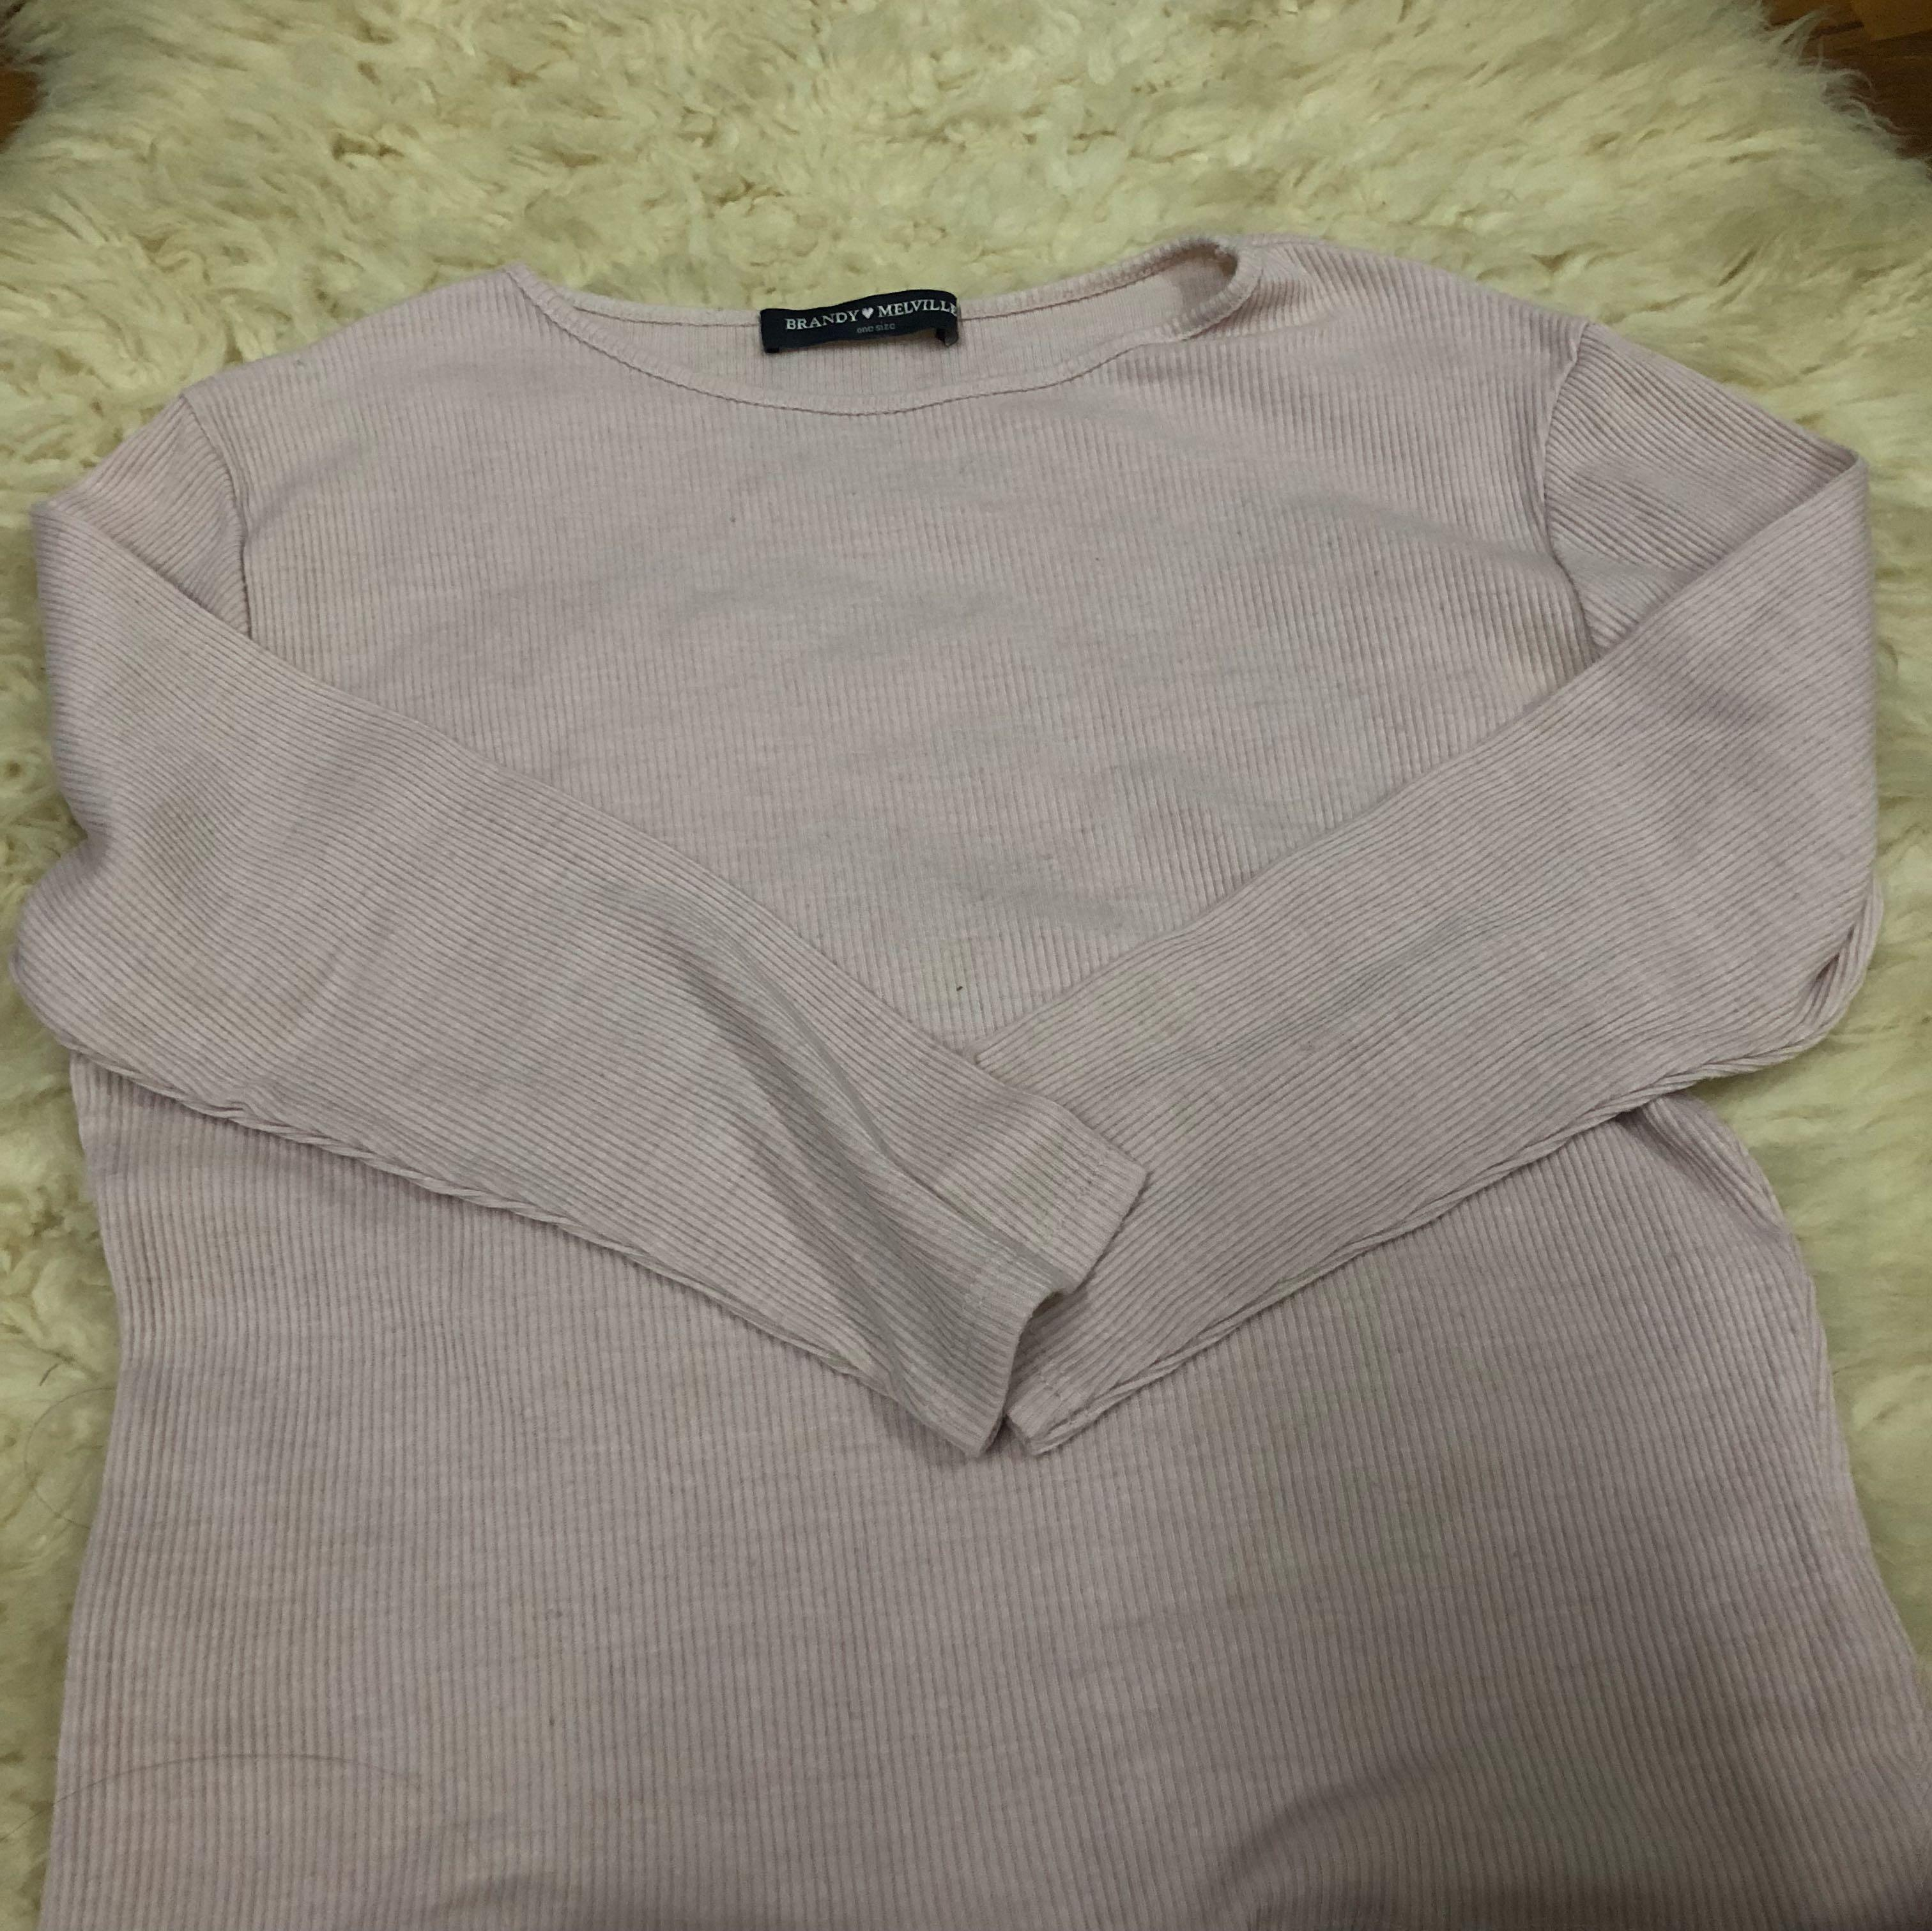 Brandy Melville May 3/4 long sleeve top in blush pink